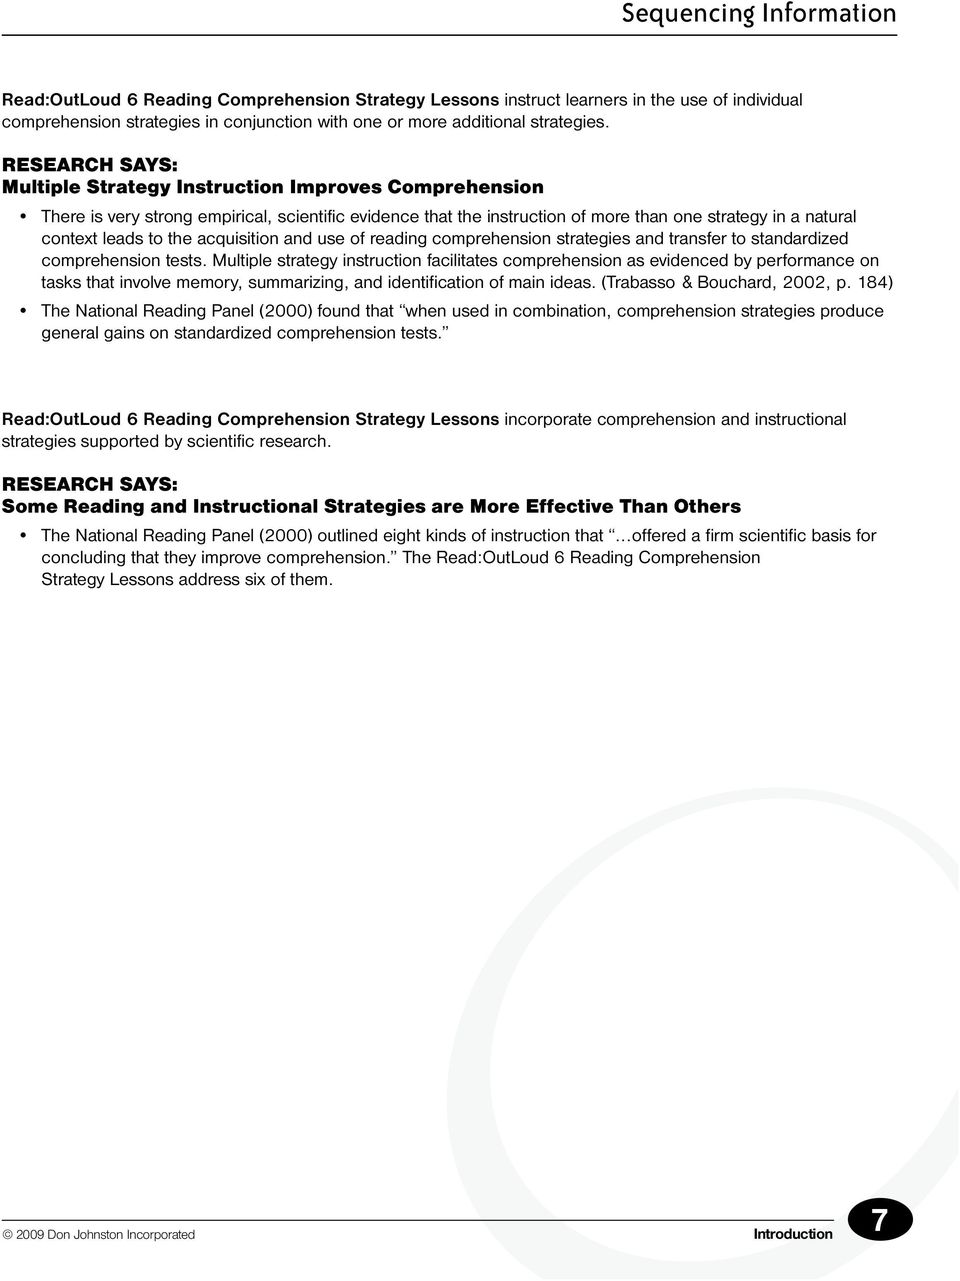 Reading Strategies Sequencing Information Pdf